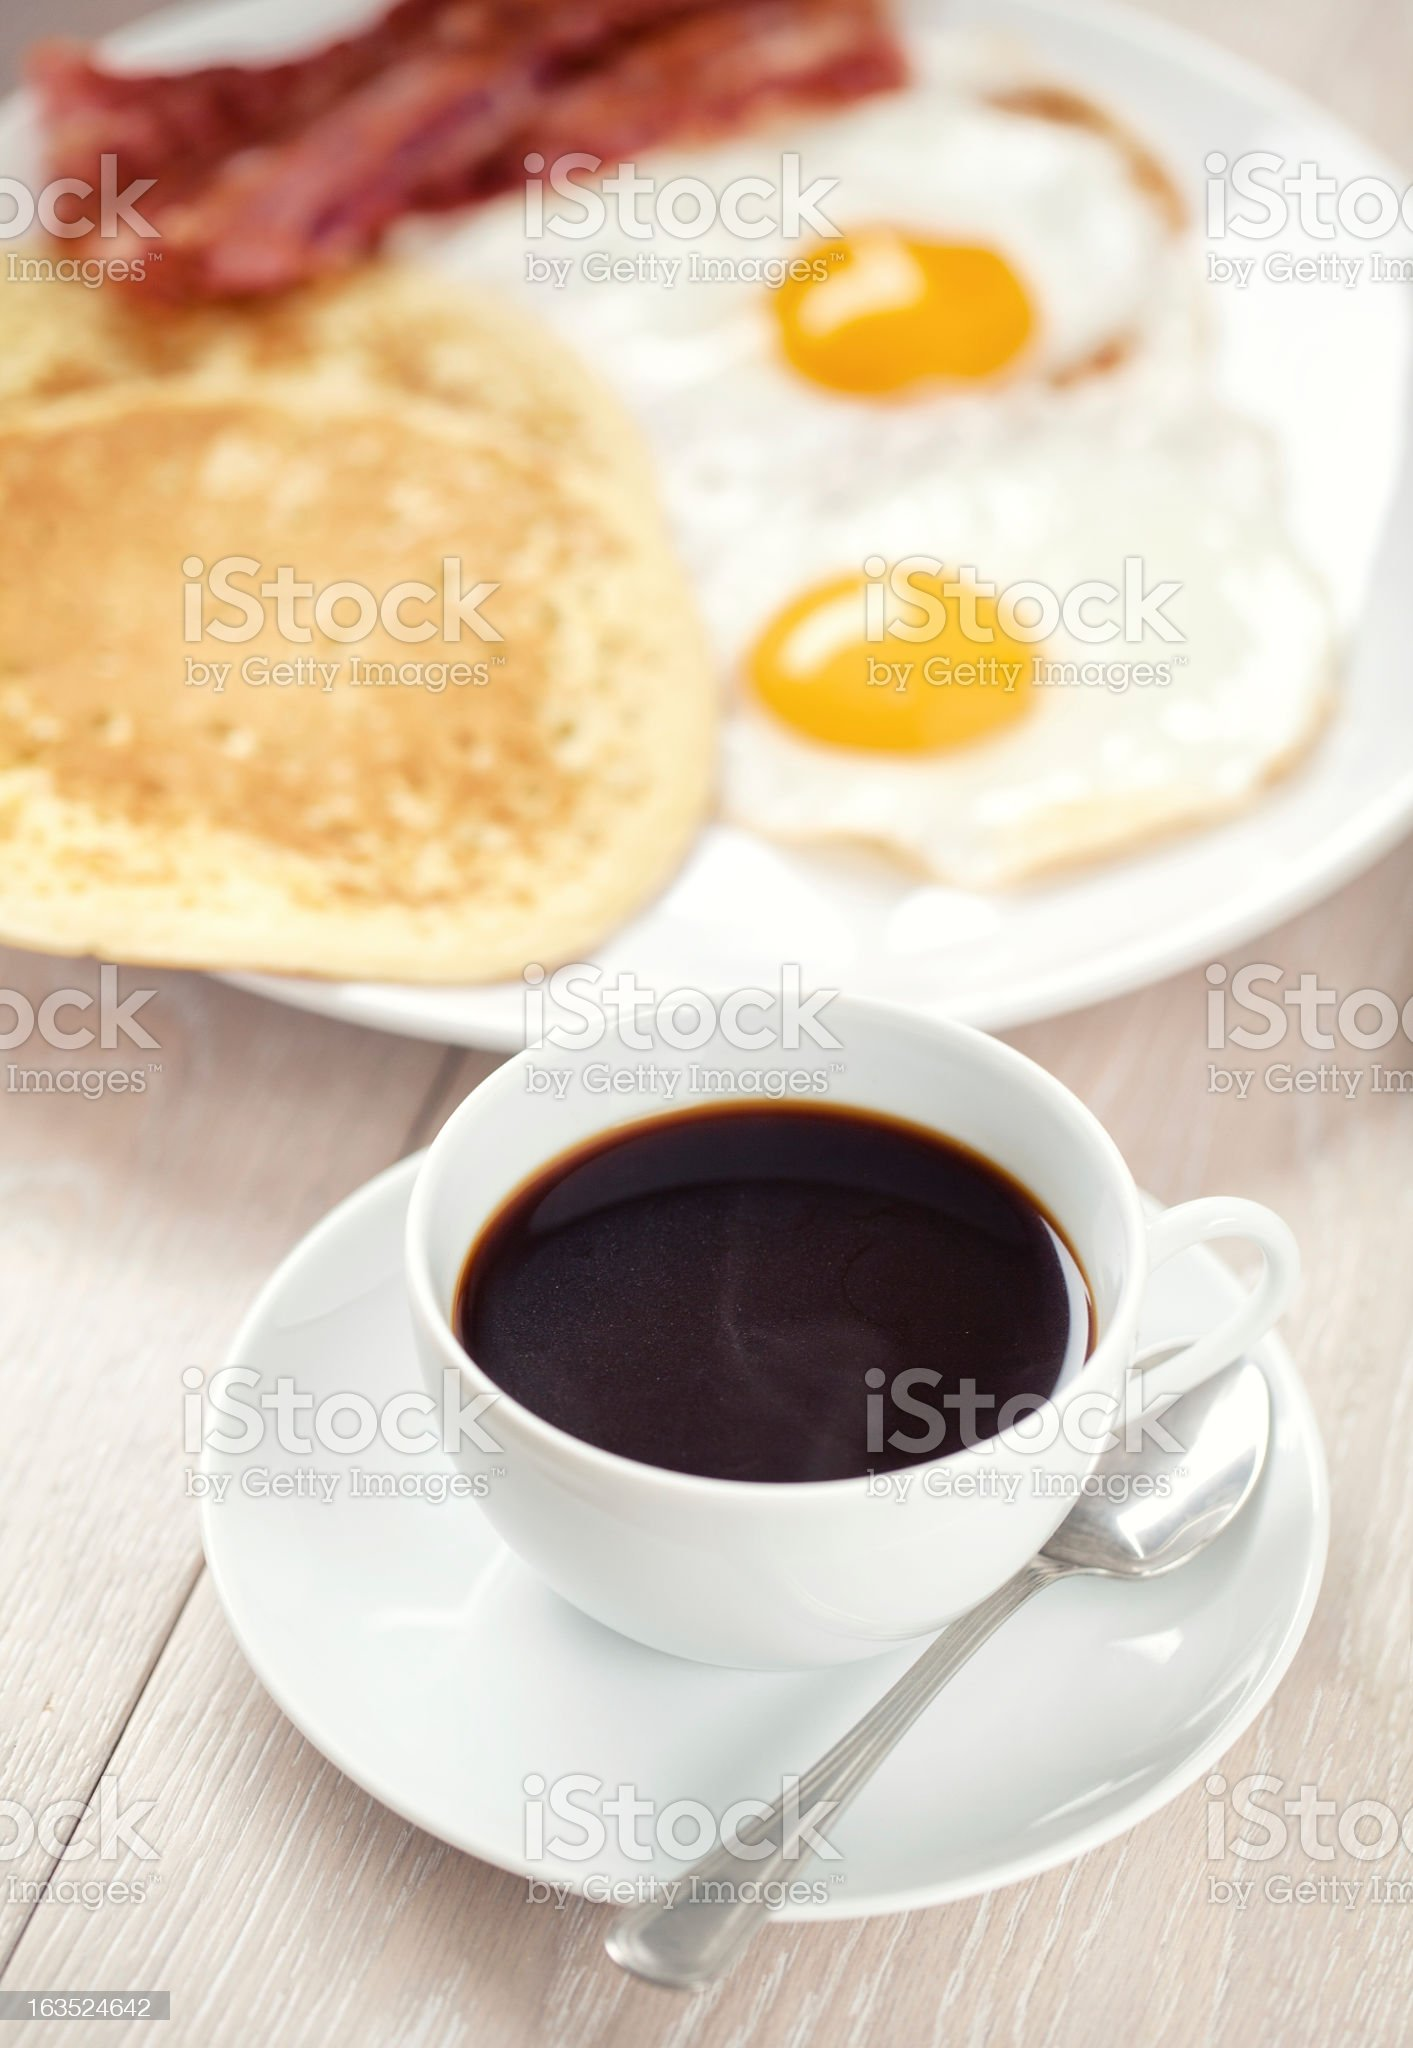 Coffe with Pancakes, Bacon and Eggs royalty-free stock photo